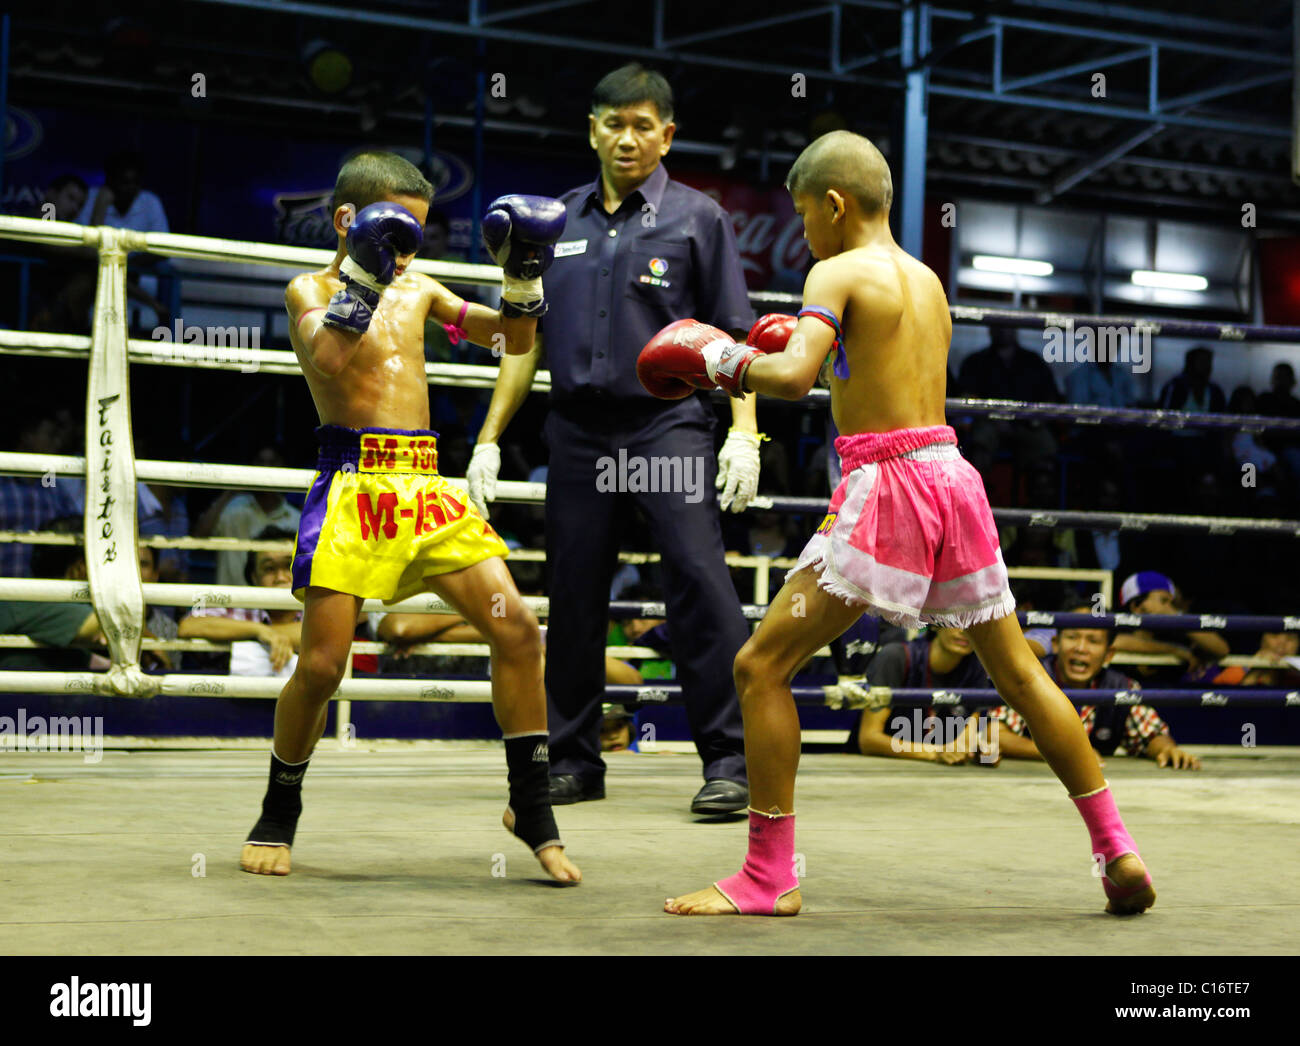 Two young boys kickboxing in Thailand, - Stock Image